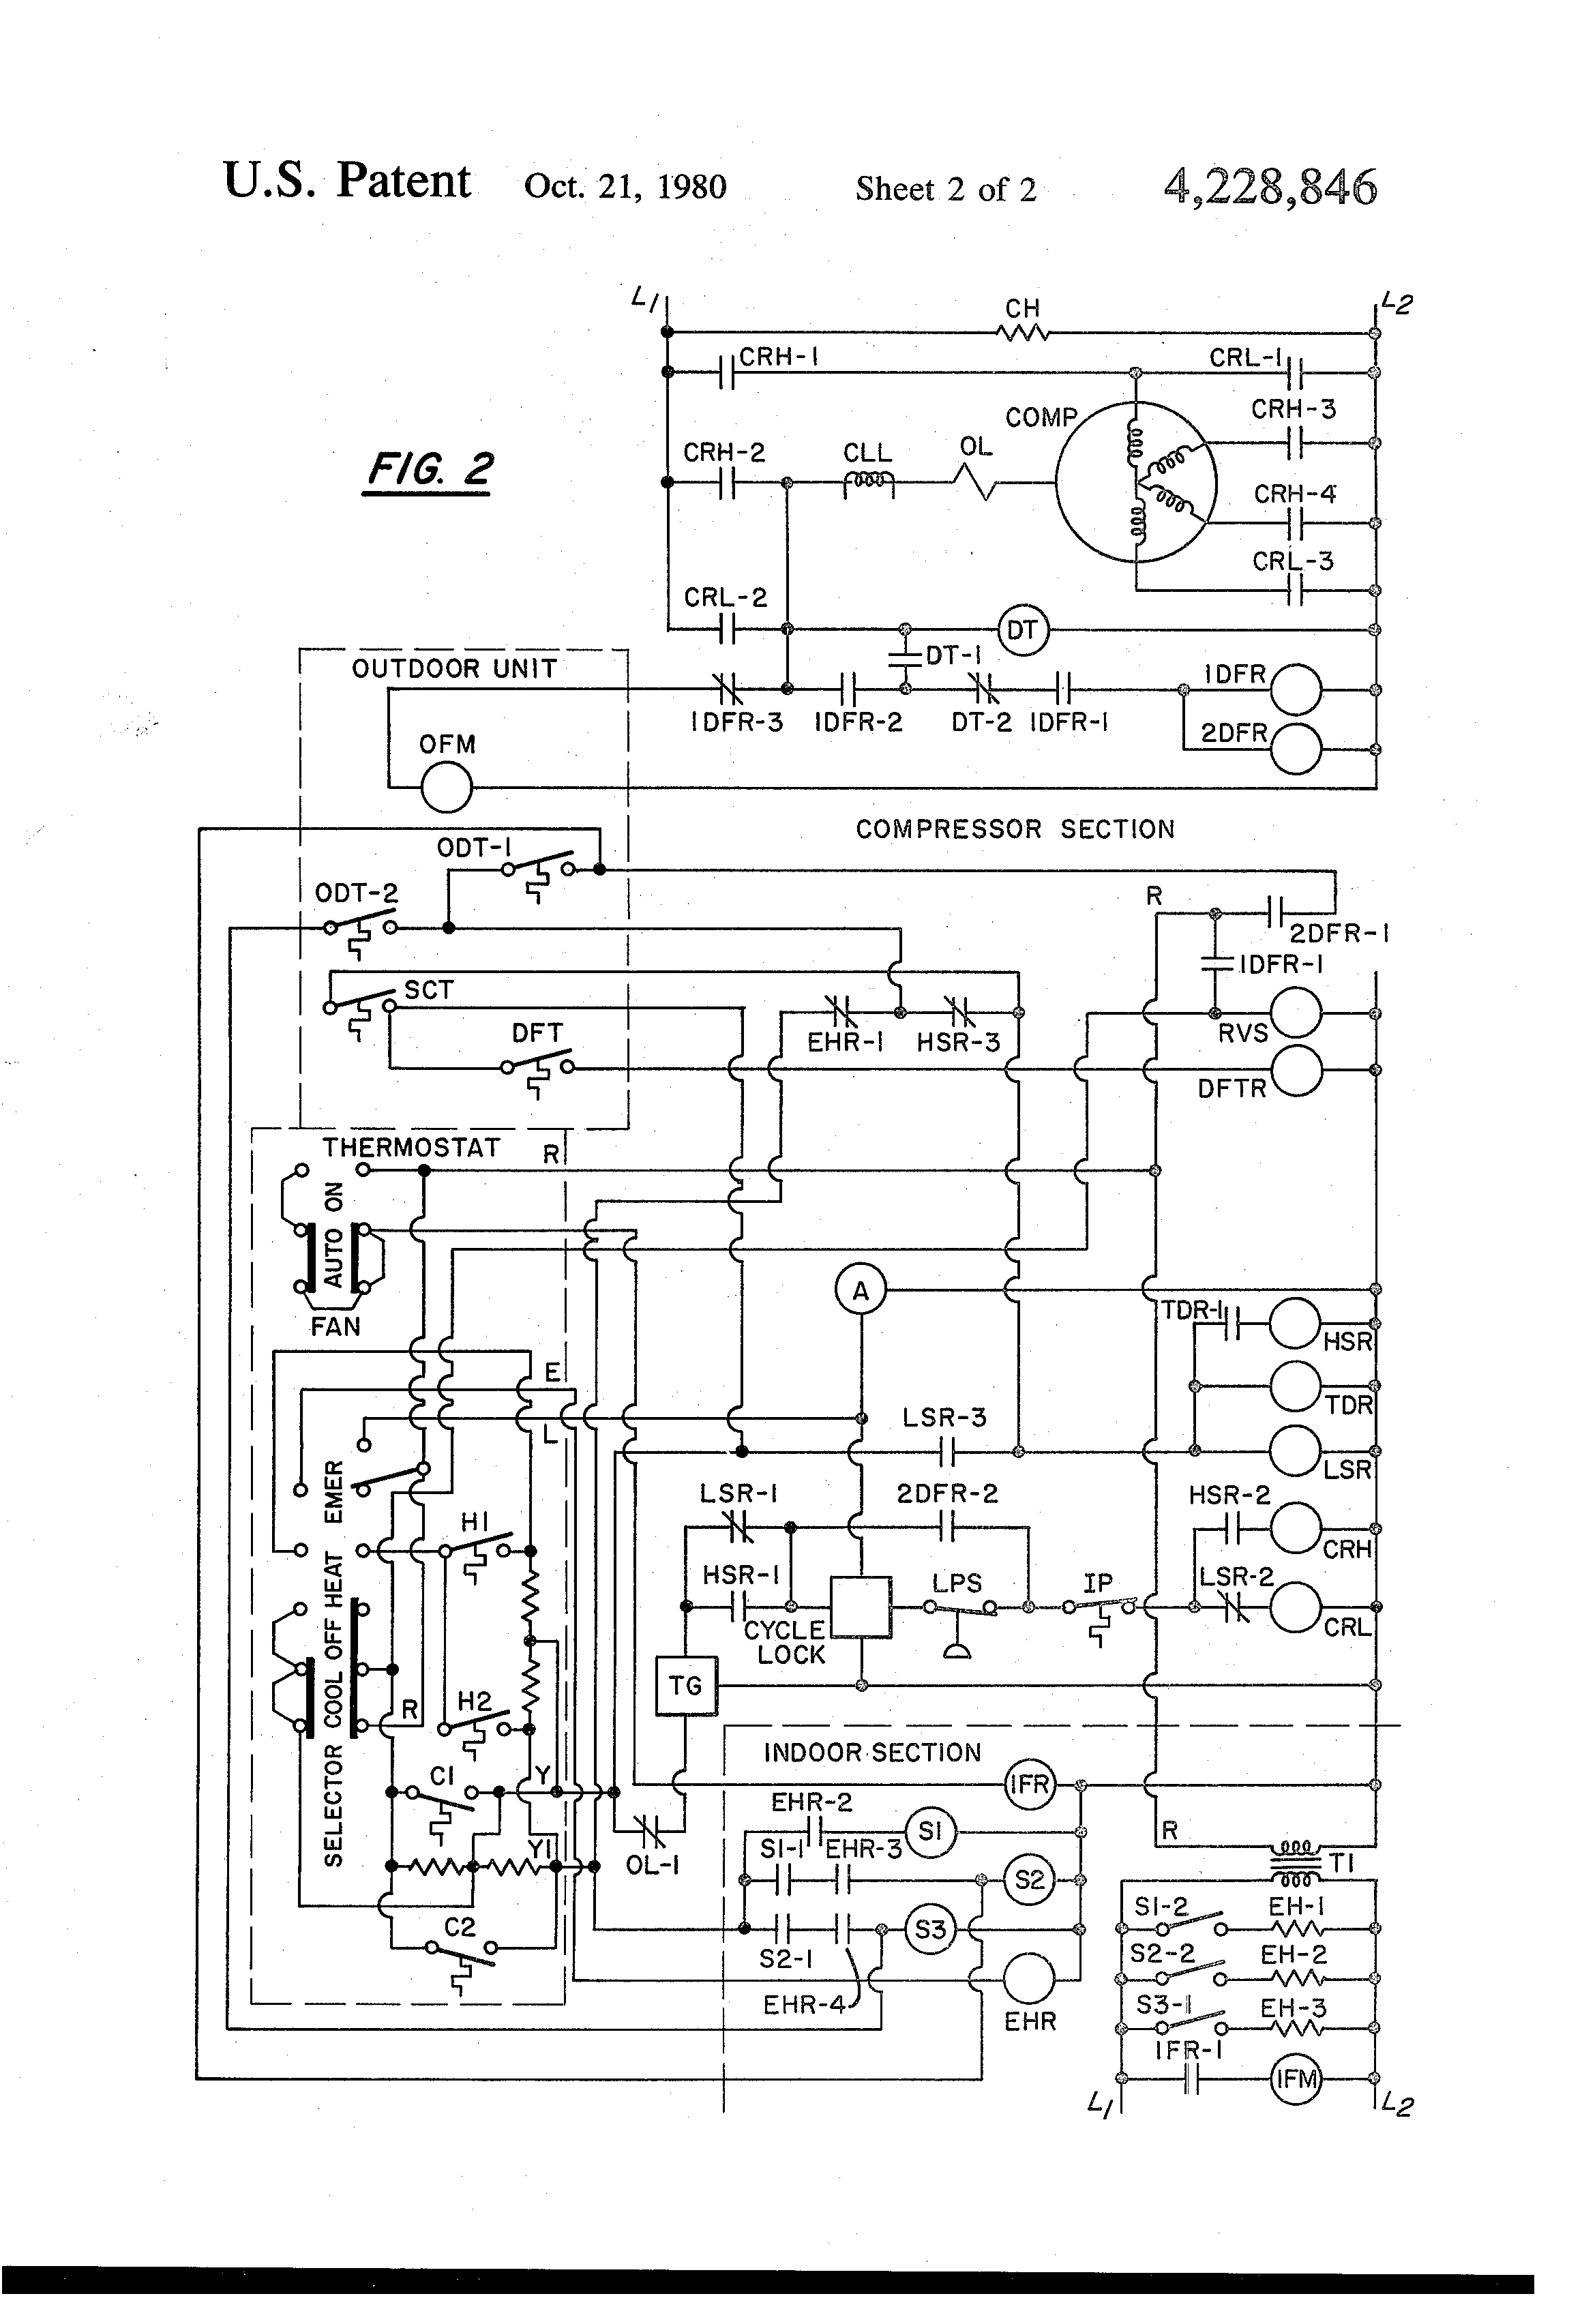 Typical Unit Heater Wiring Diagram Libraries Hot Water Dayton Electric Diagrams Scematicdayton Simple